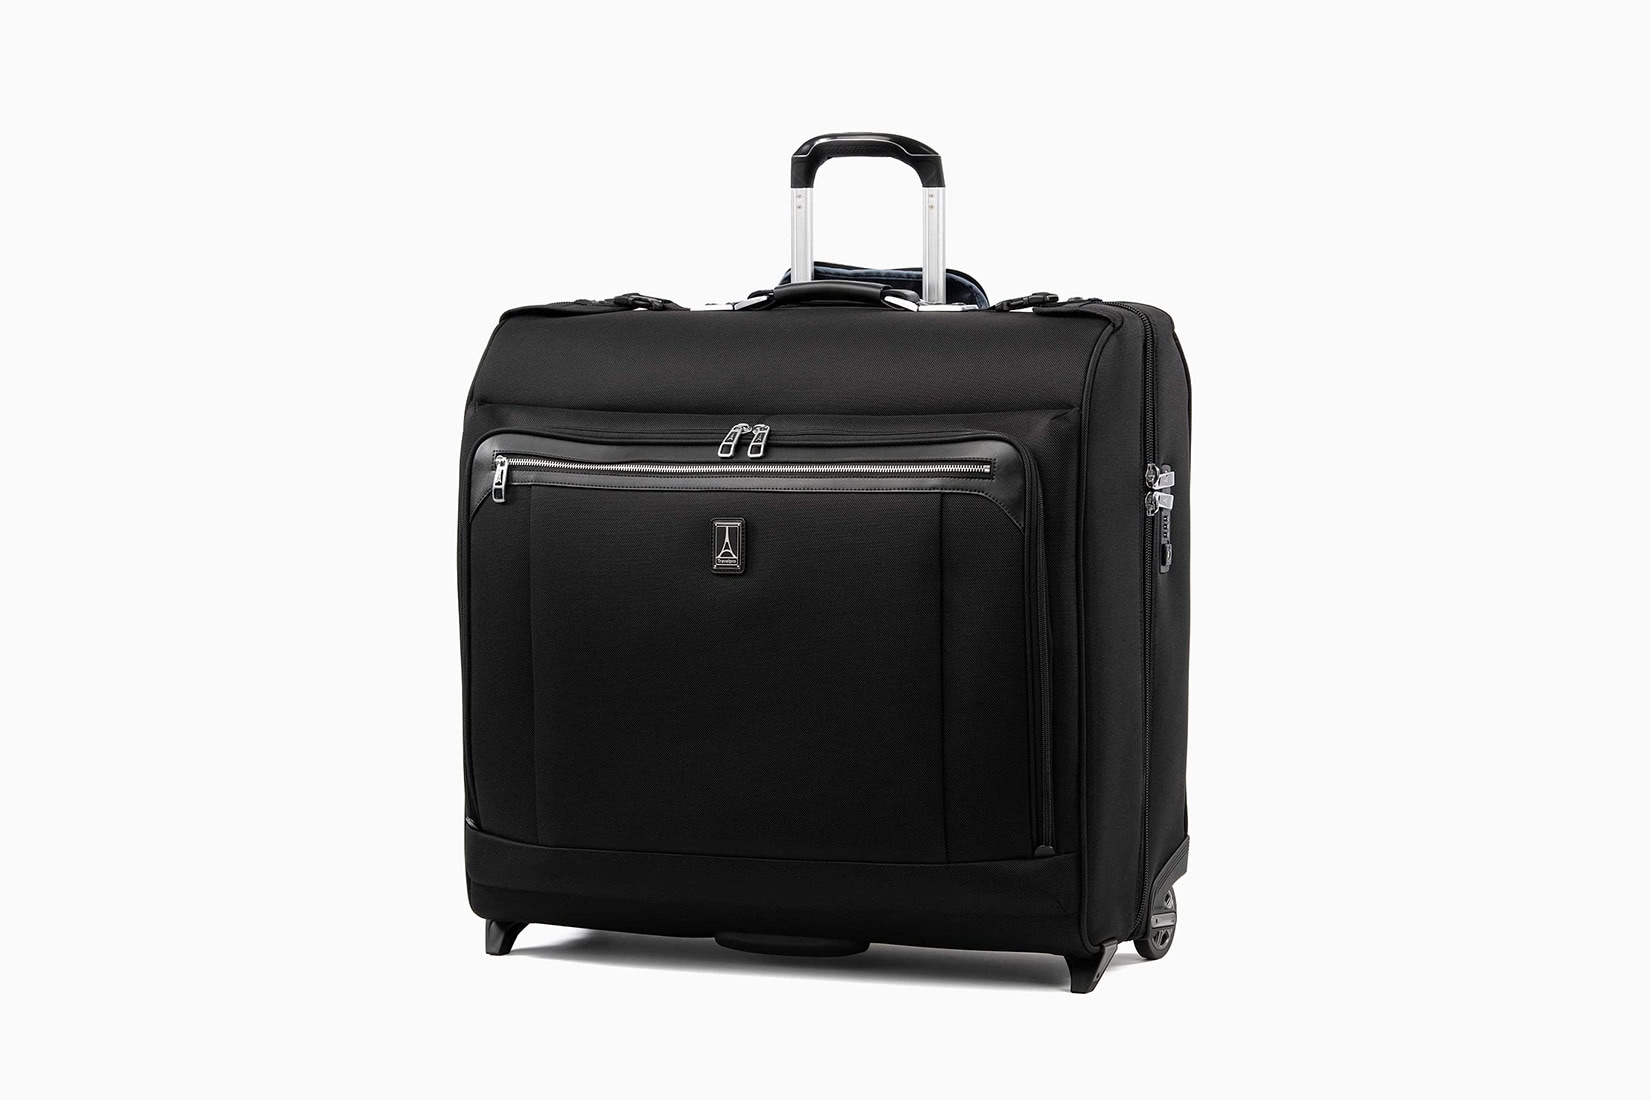 best garment bags large travelpro review - Luxe Digital